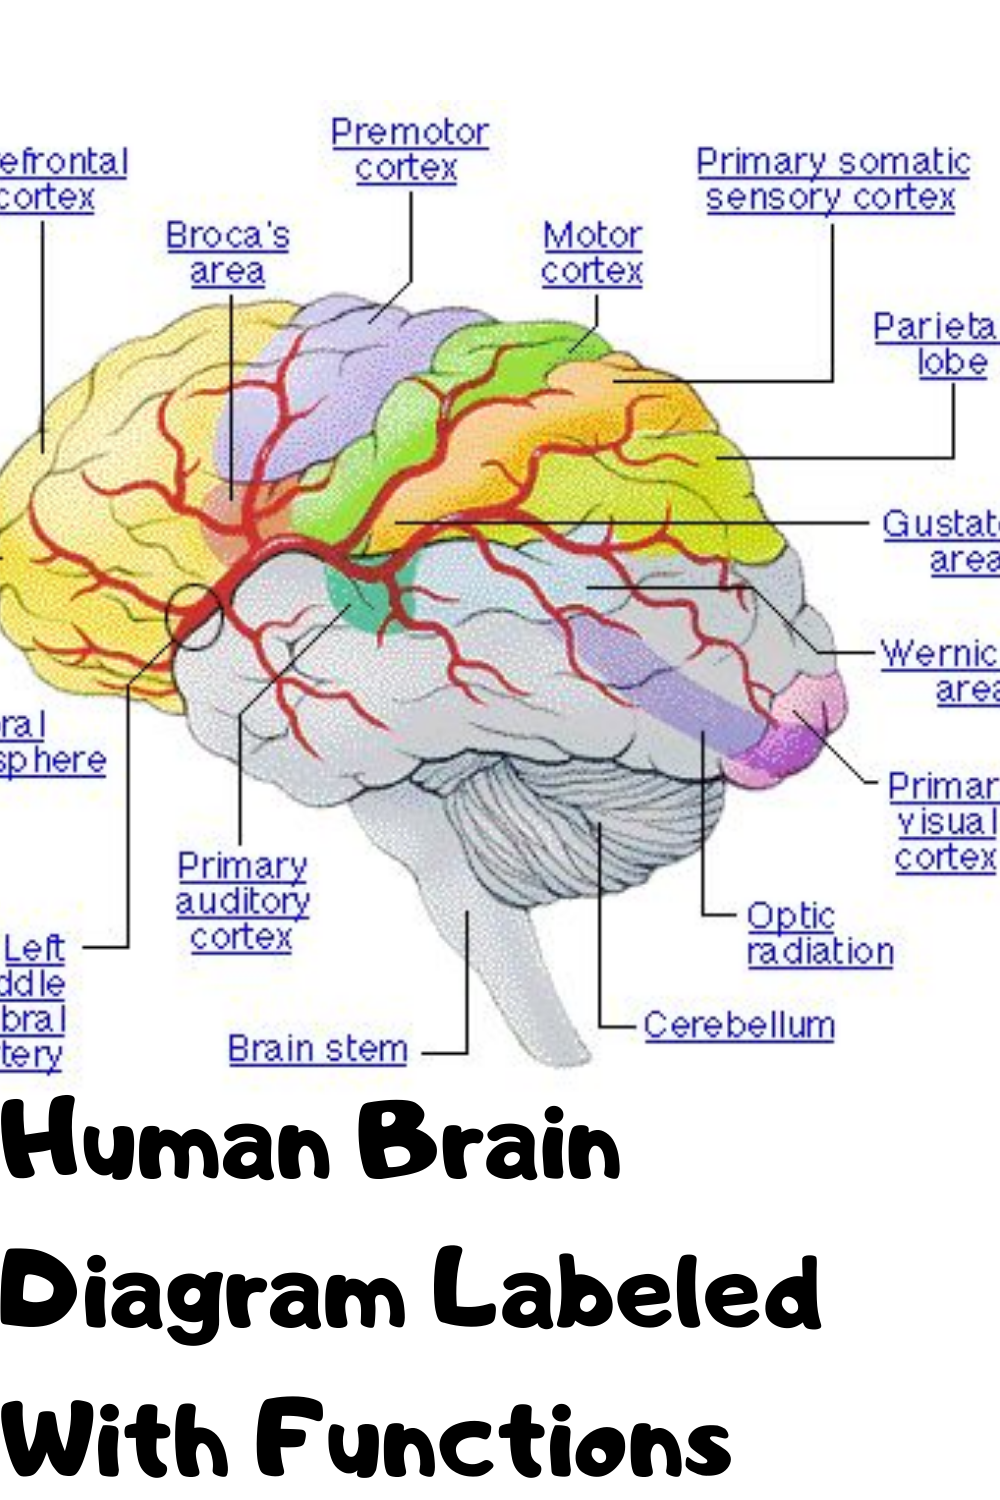 Human Brain Picture labeled in 2020 | Human brain diagram ...